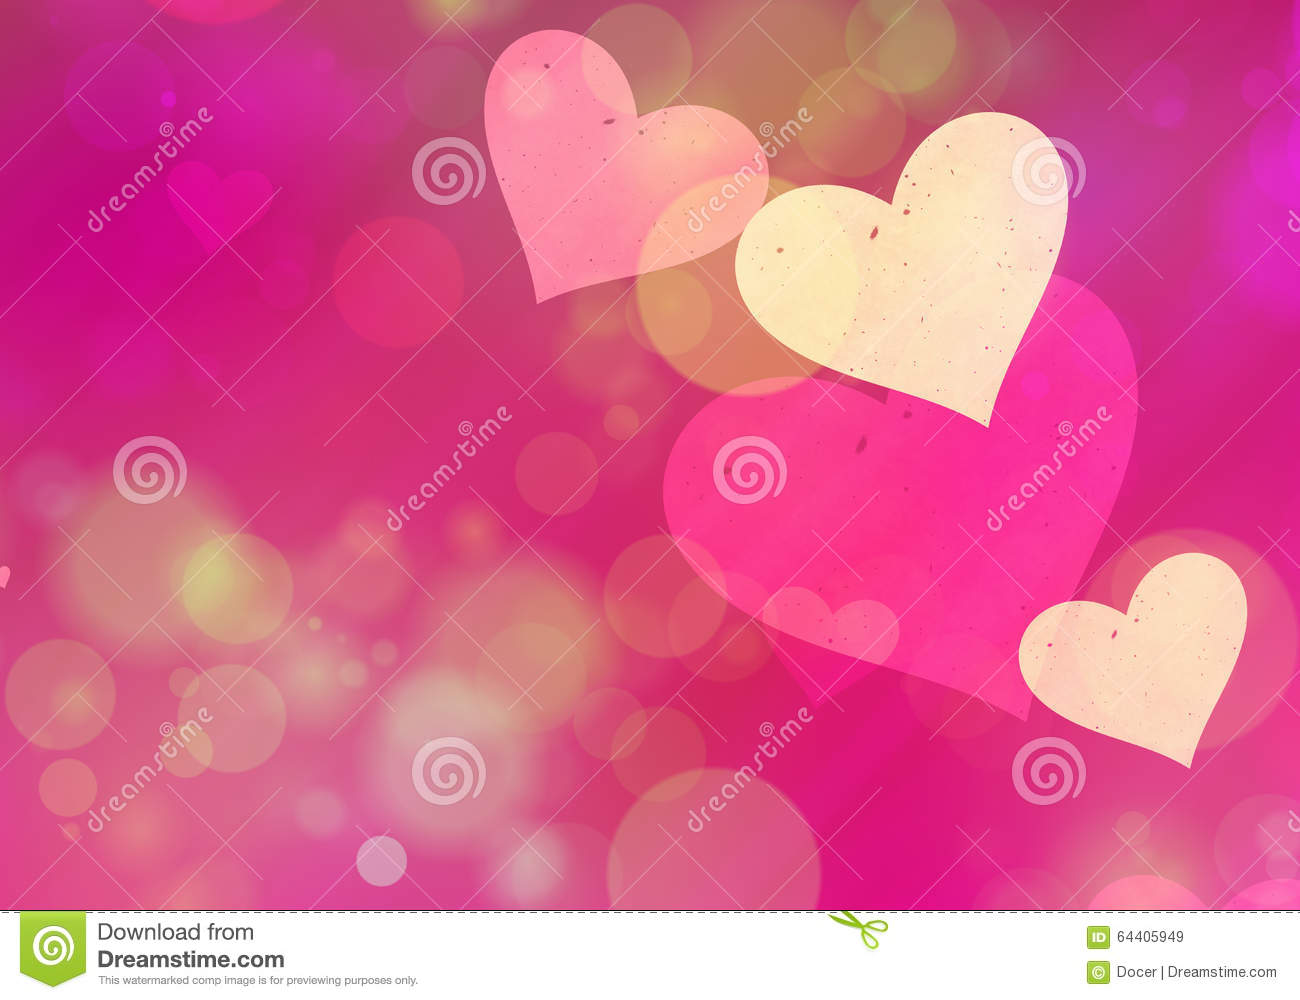 Multicolored hearts bokeh background of a love symbol stock multicolored hearts bokeh background of a love symbol royalty free illustration buycottarizona Image collections